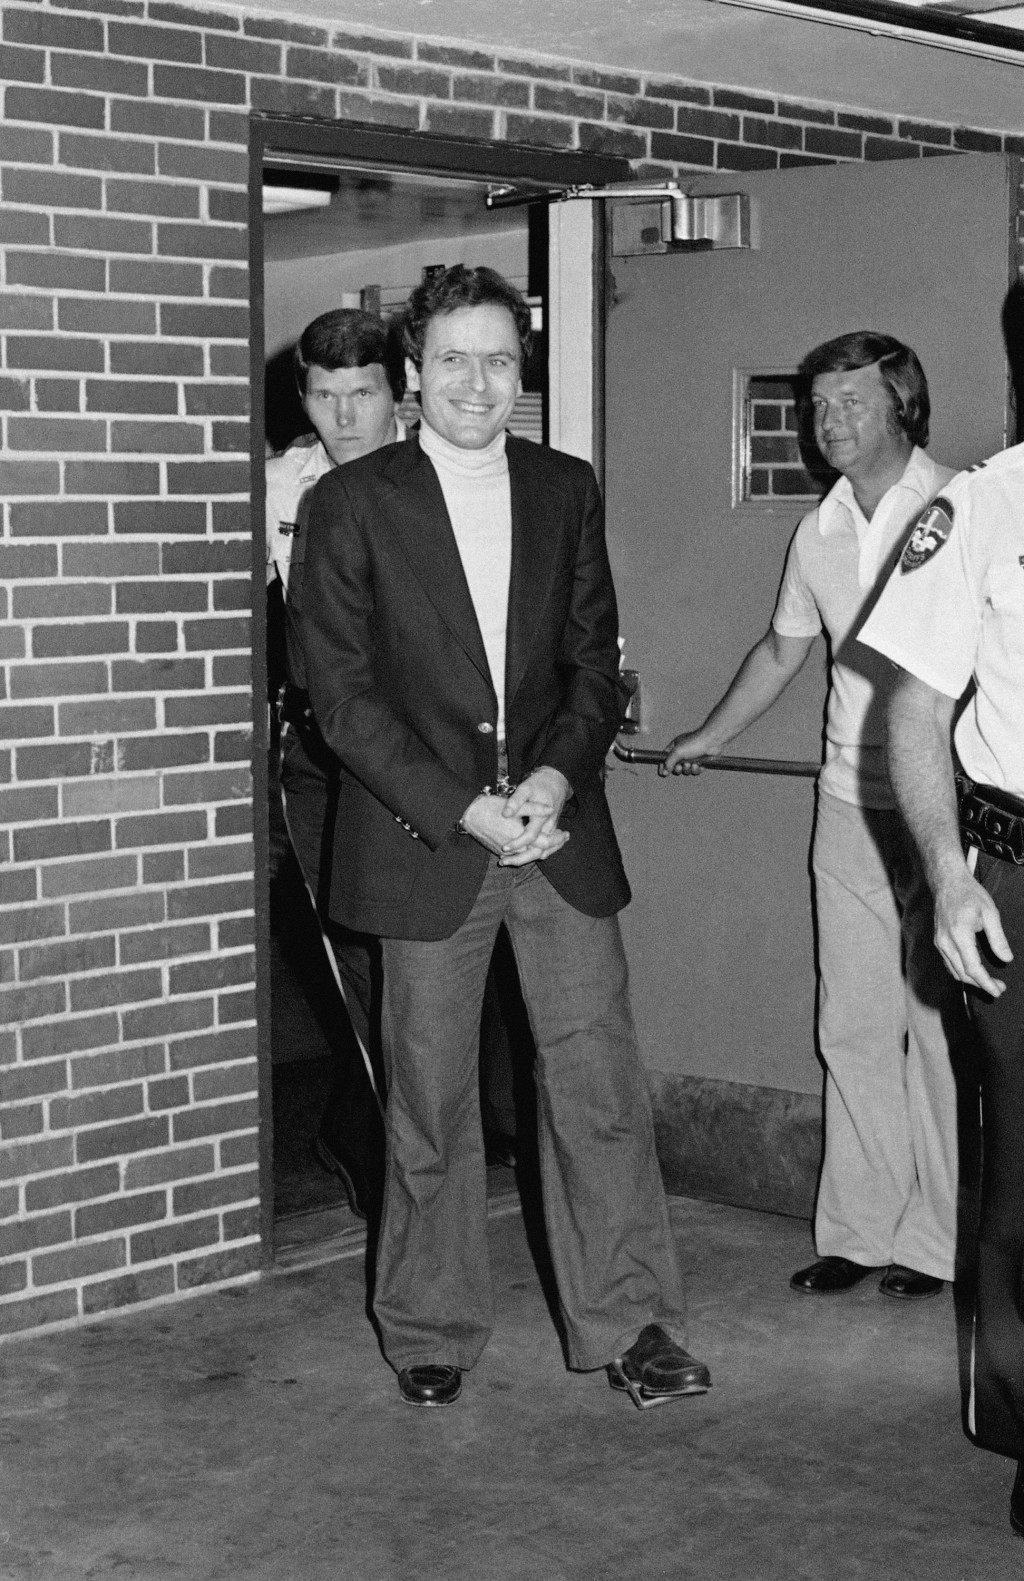 FILE - In this June 13, 1977 file photo, Ted Bundy appears in cuffs after being recaptured just outside of Aspen City limits. He was pulled over by th